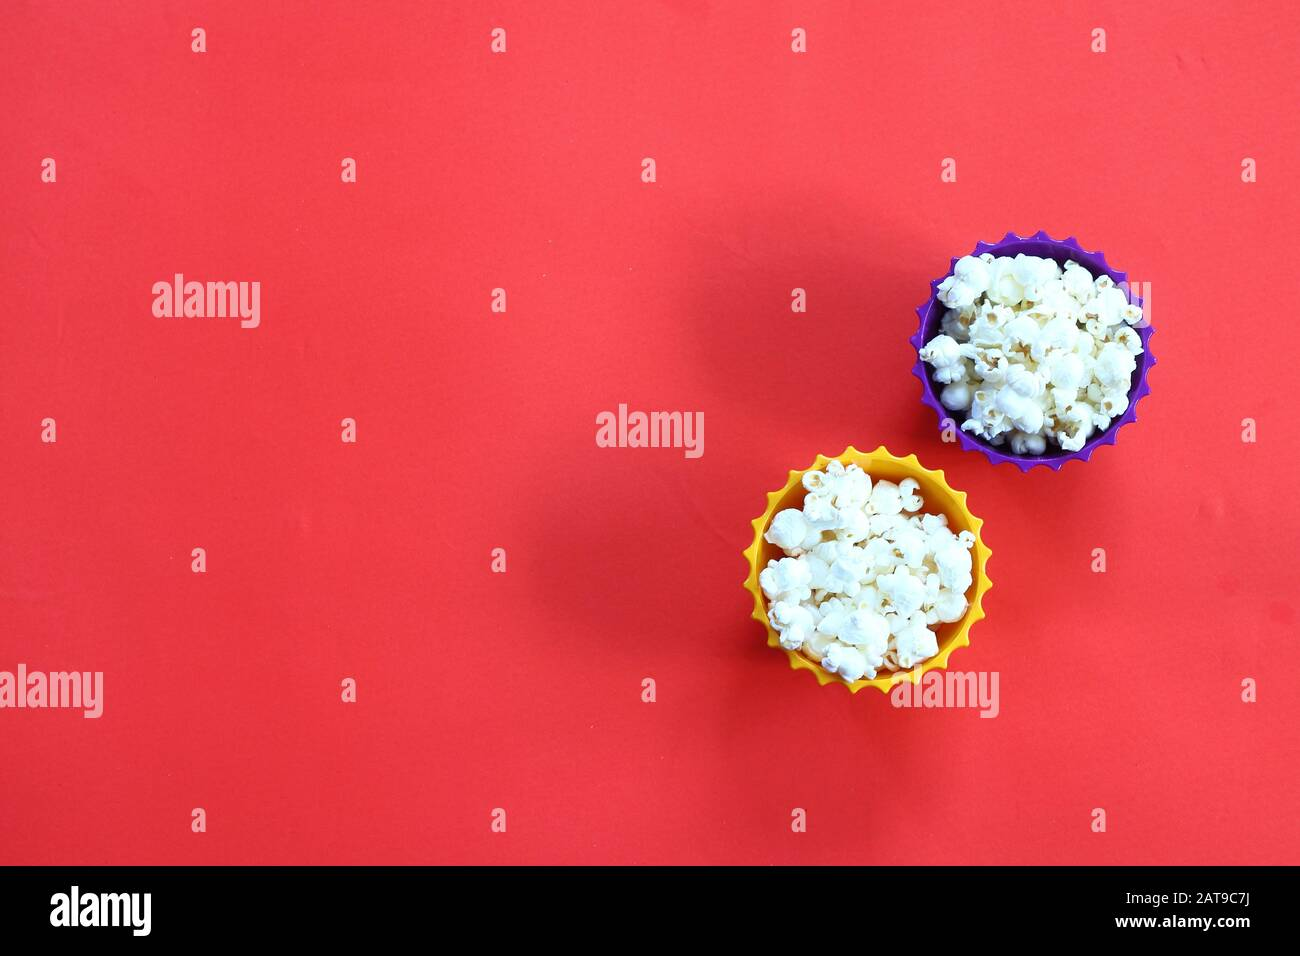 empty bowl clip art high resolution stock photography and images alamy https www alamy com glass bowl of salty popcorn on a red background top view with copy space flat lay image341955926 html